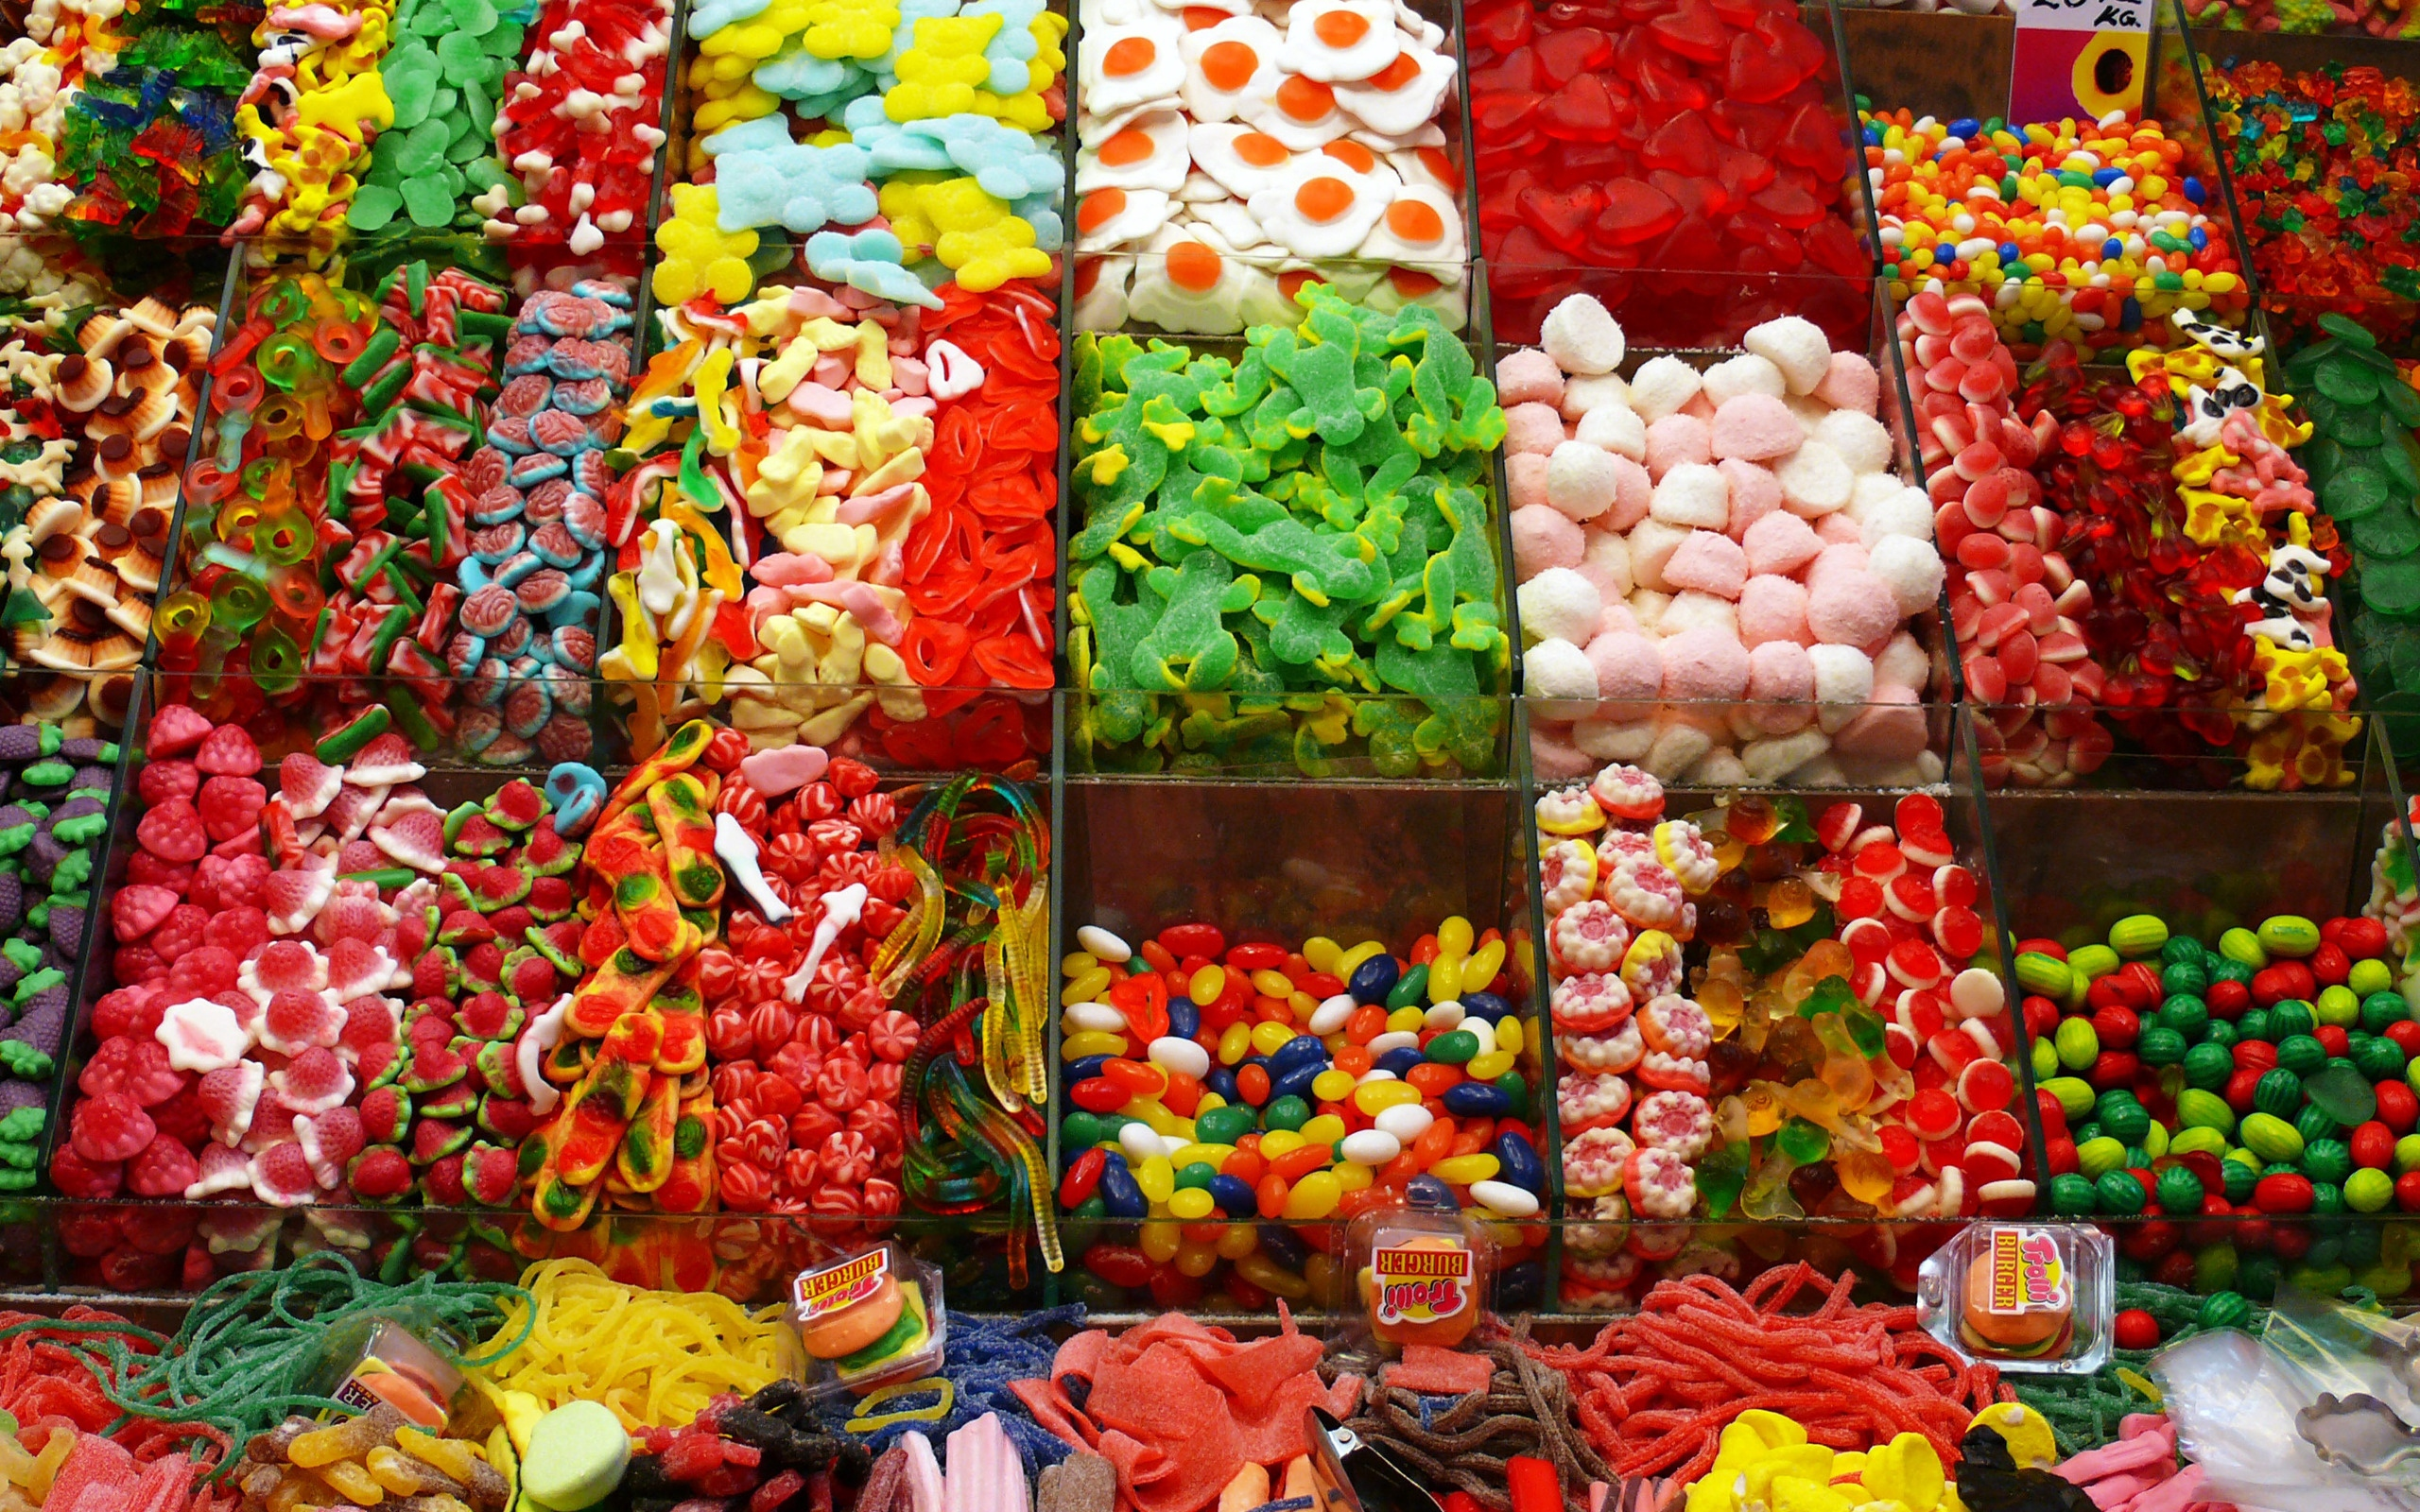 Candy Sweets Different Many Small Store Countertop Market Showcase 2560x1600